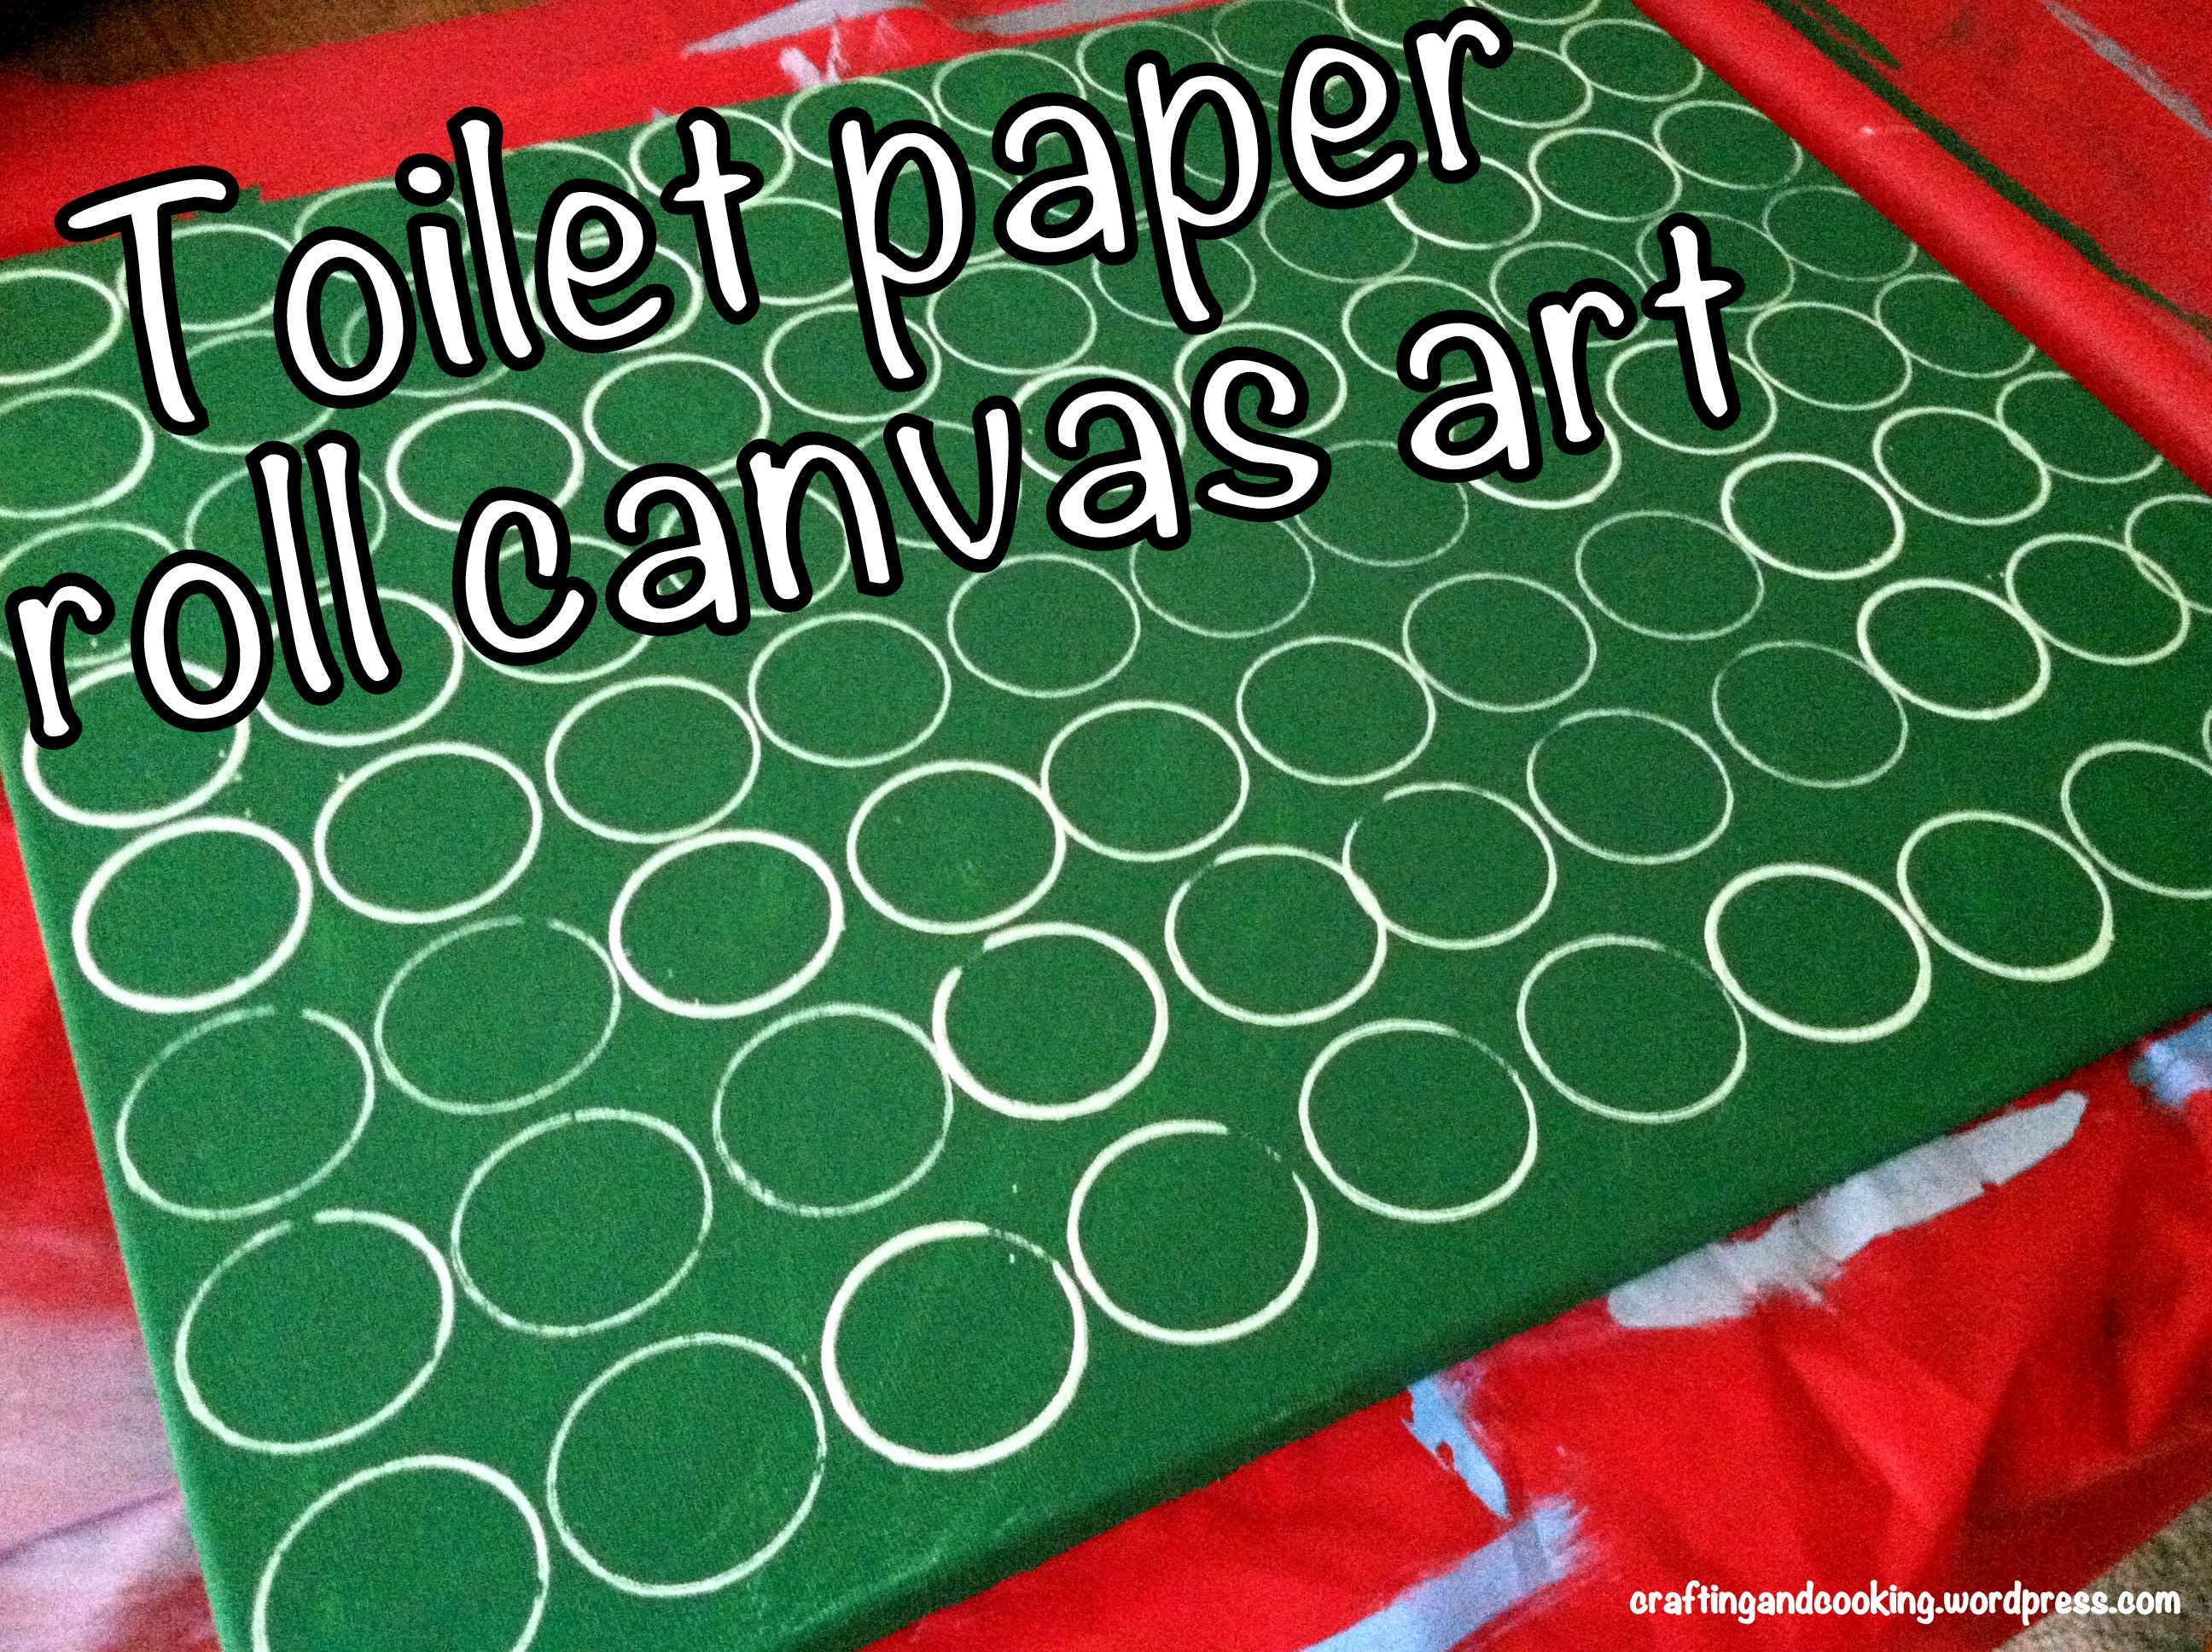 Toilet paper roll canvas art 5 crafting and cooking for Newspaper canvas art